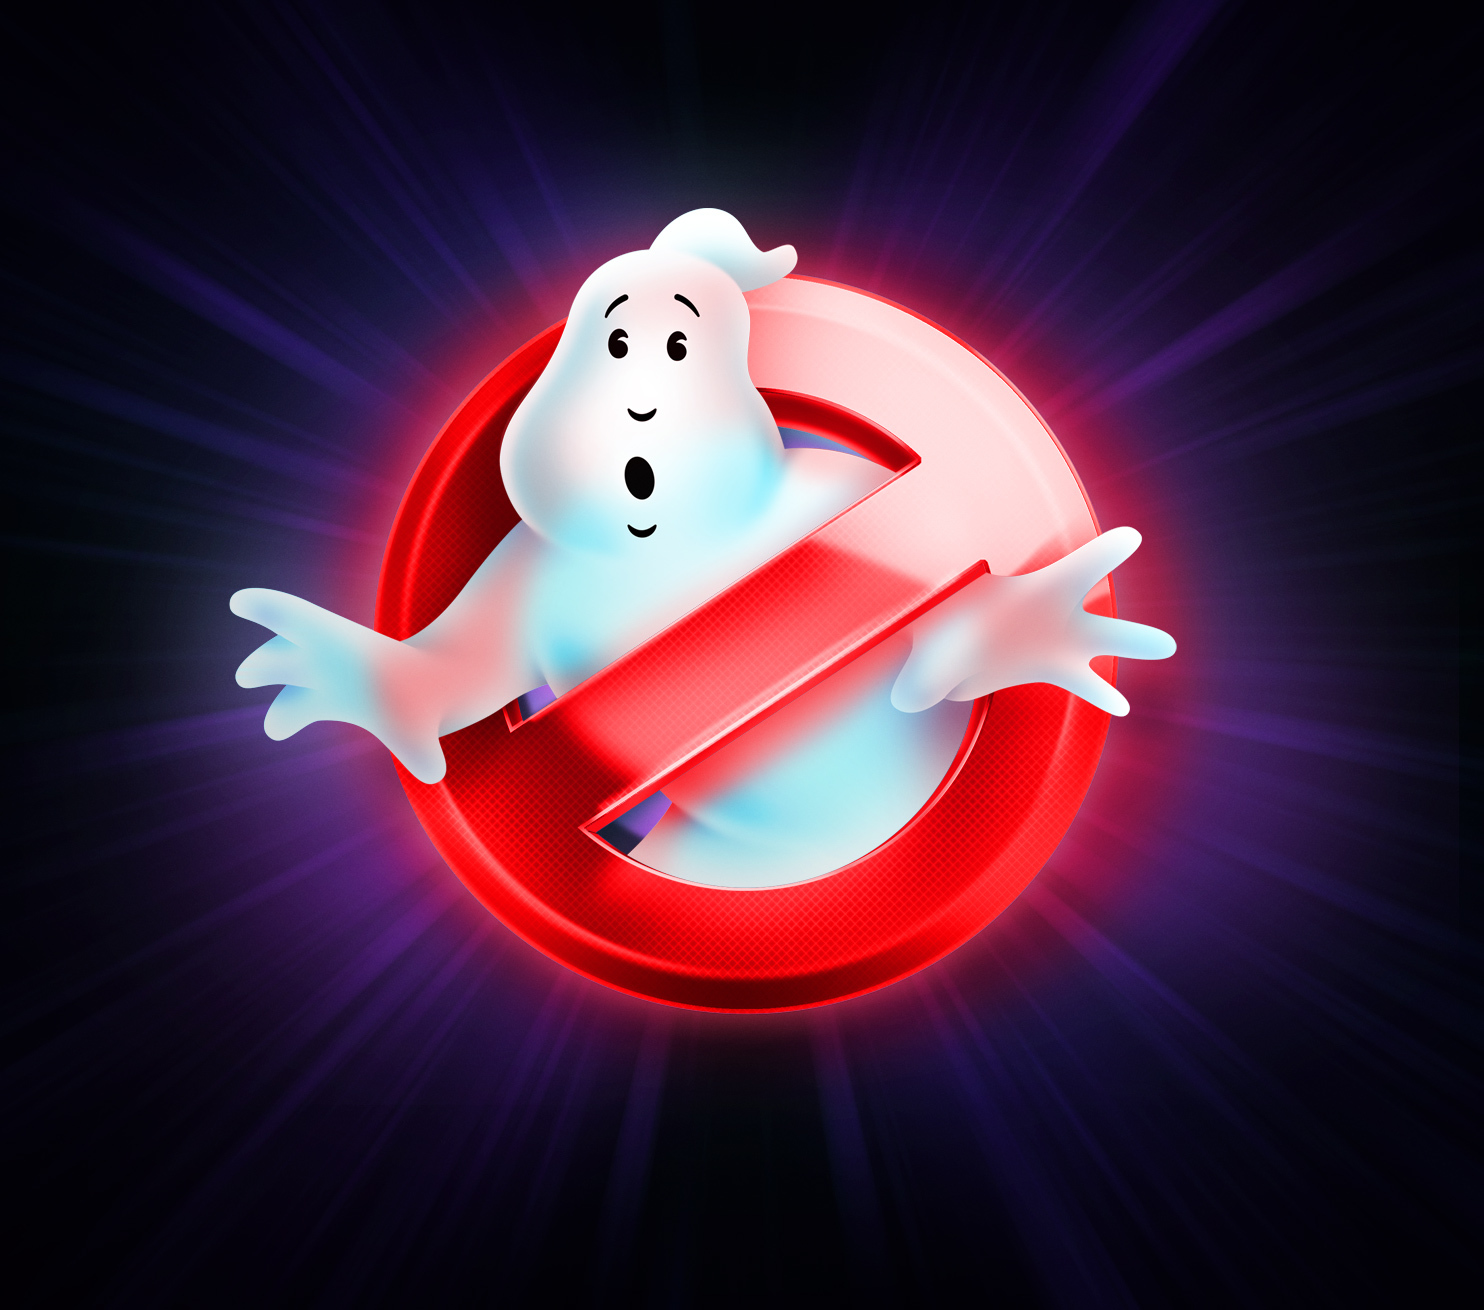 15_ghostbusters_1484px